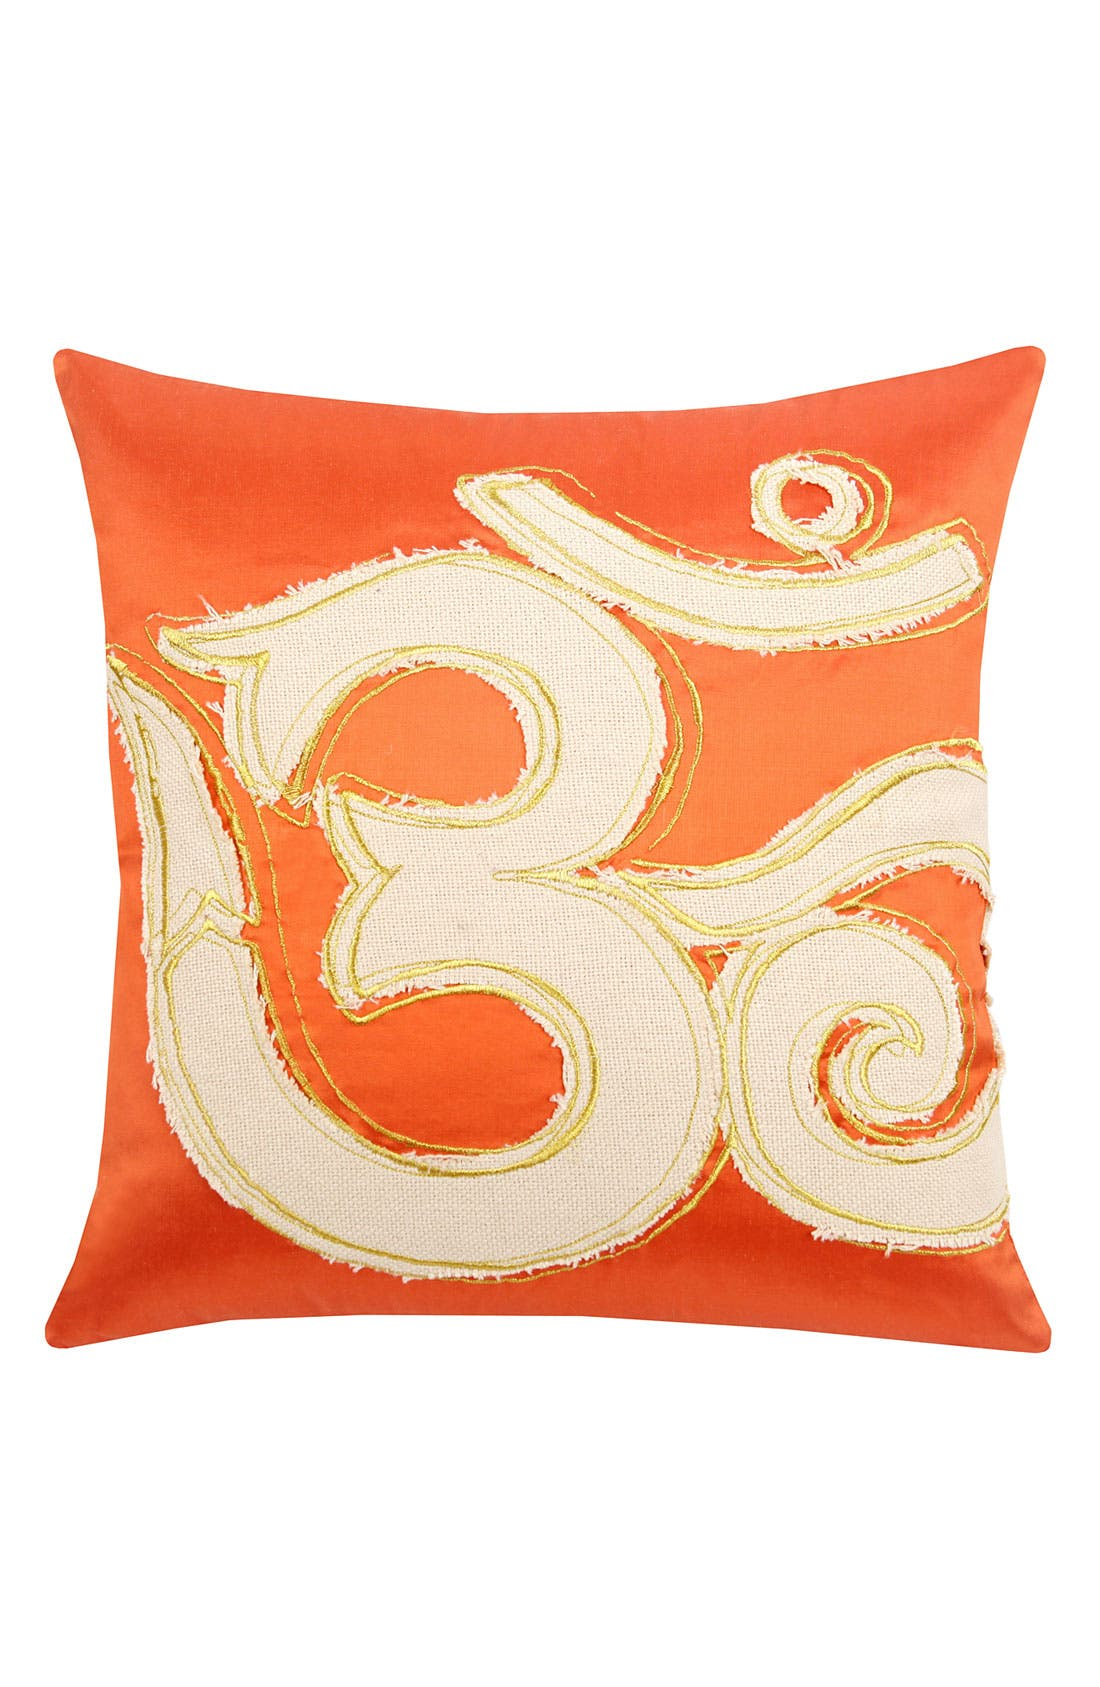 'Om' Coral Pillow,                         Main,                         color, Coral